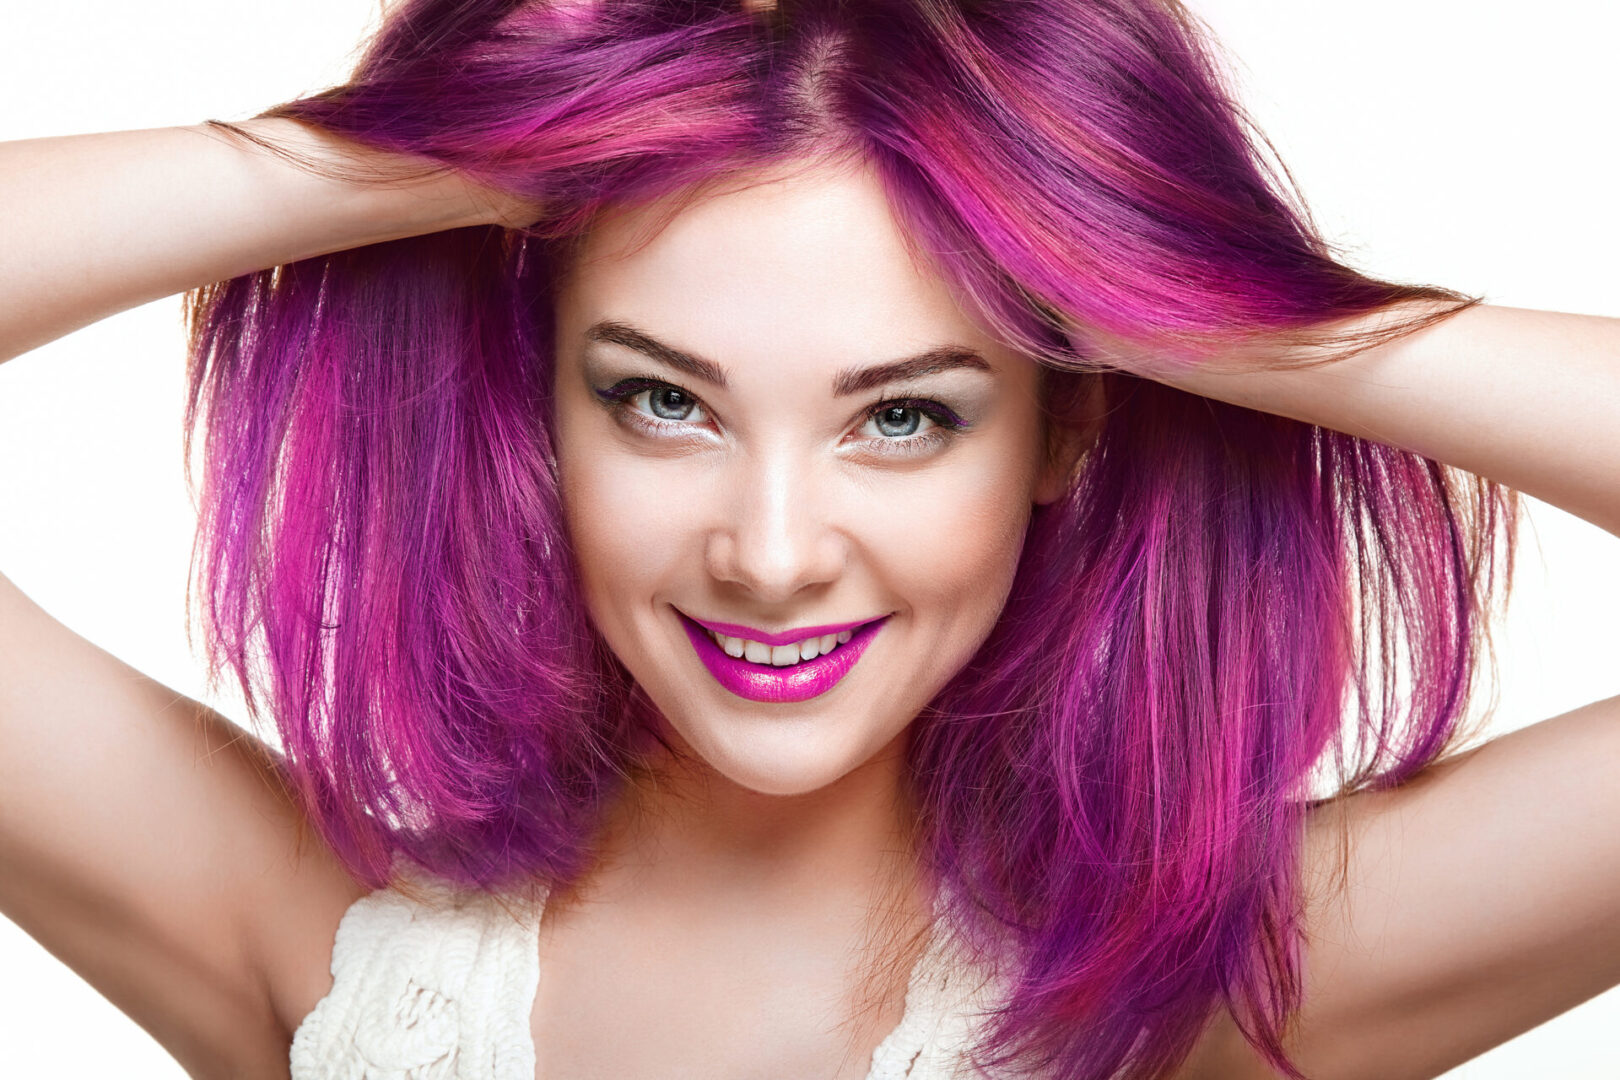 Beauty Fashion Model Girl with Colorful Dyed Hair. Girl with perfect Makeup and Hairstyle. Model with perfect Healthy Dyed Hair. Pink Hair. Woman Smiling